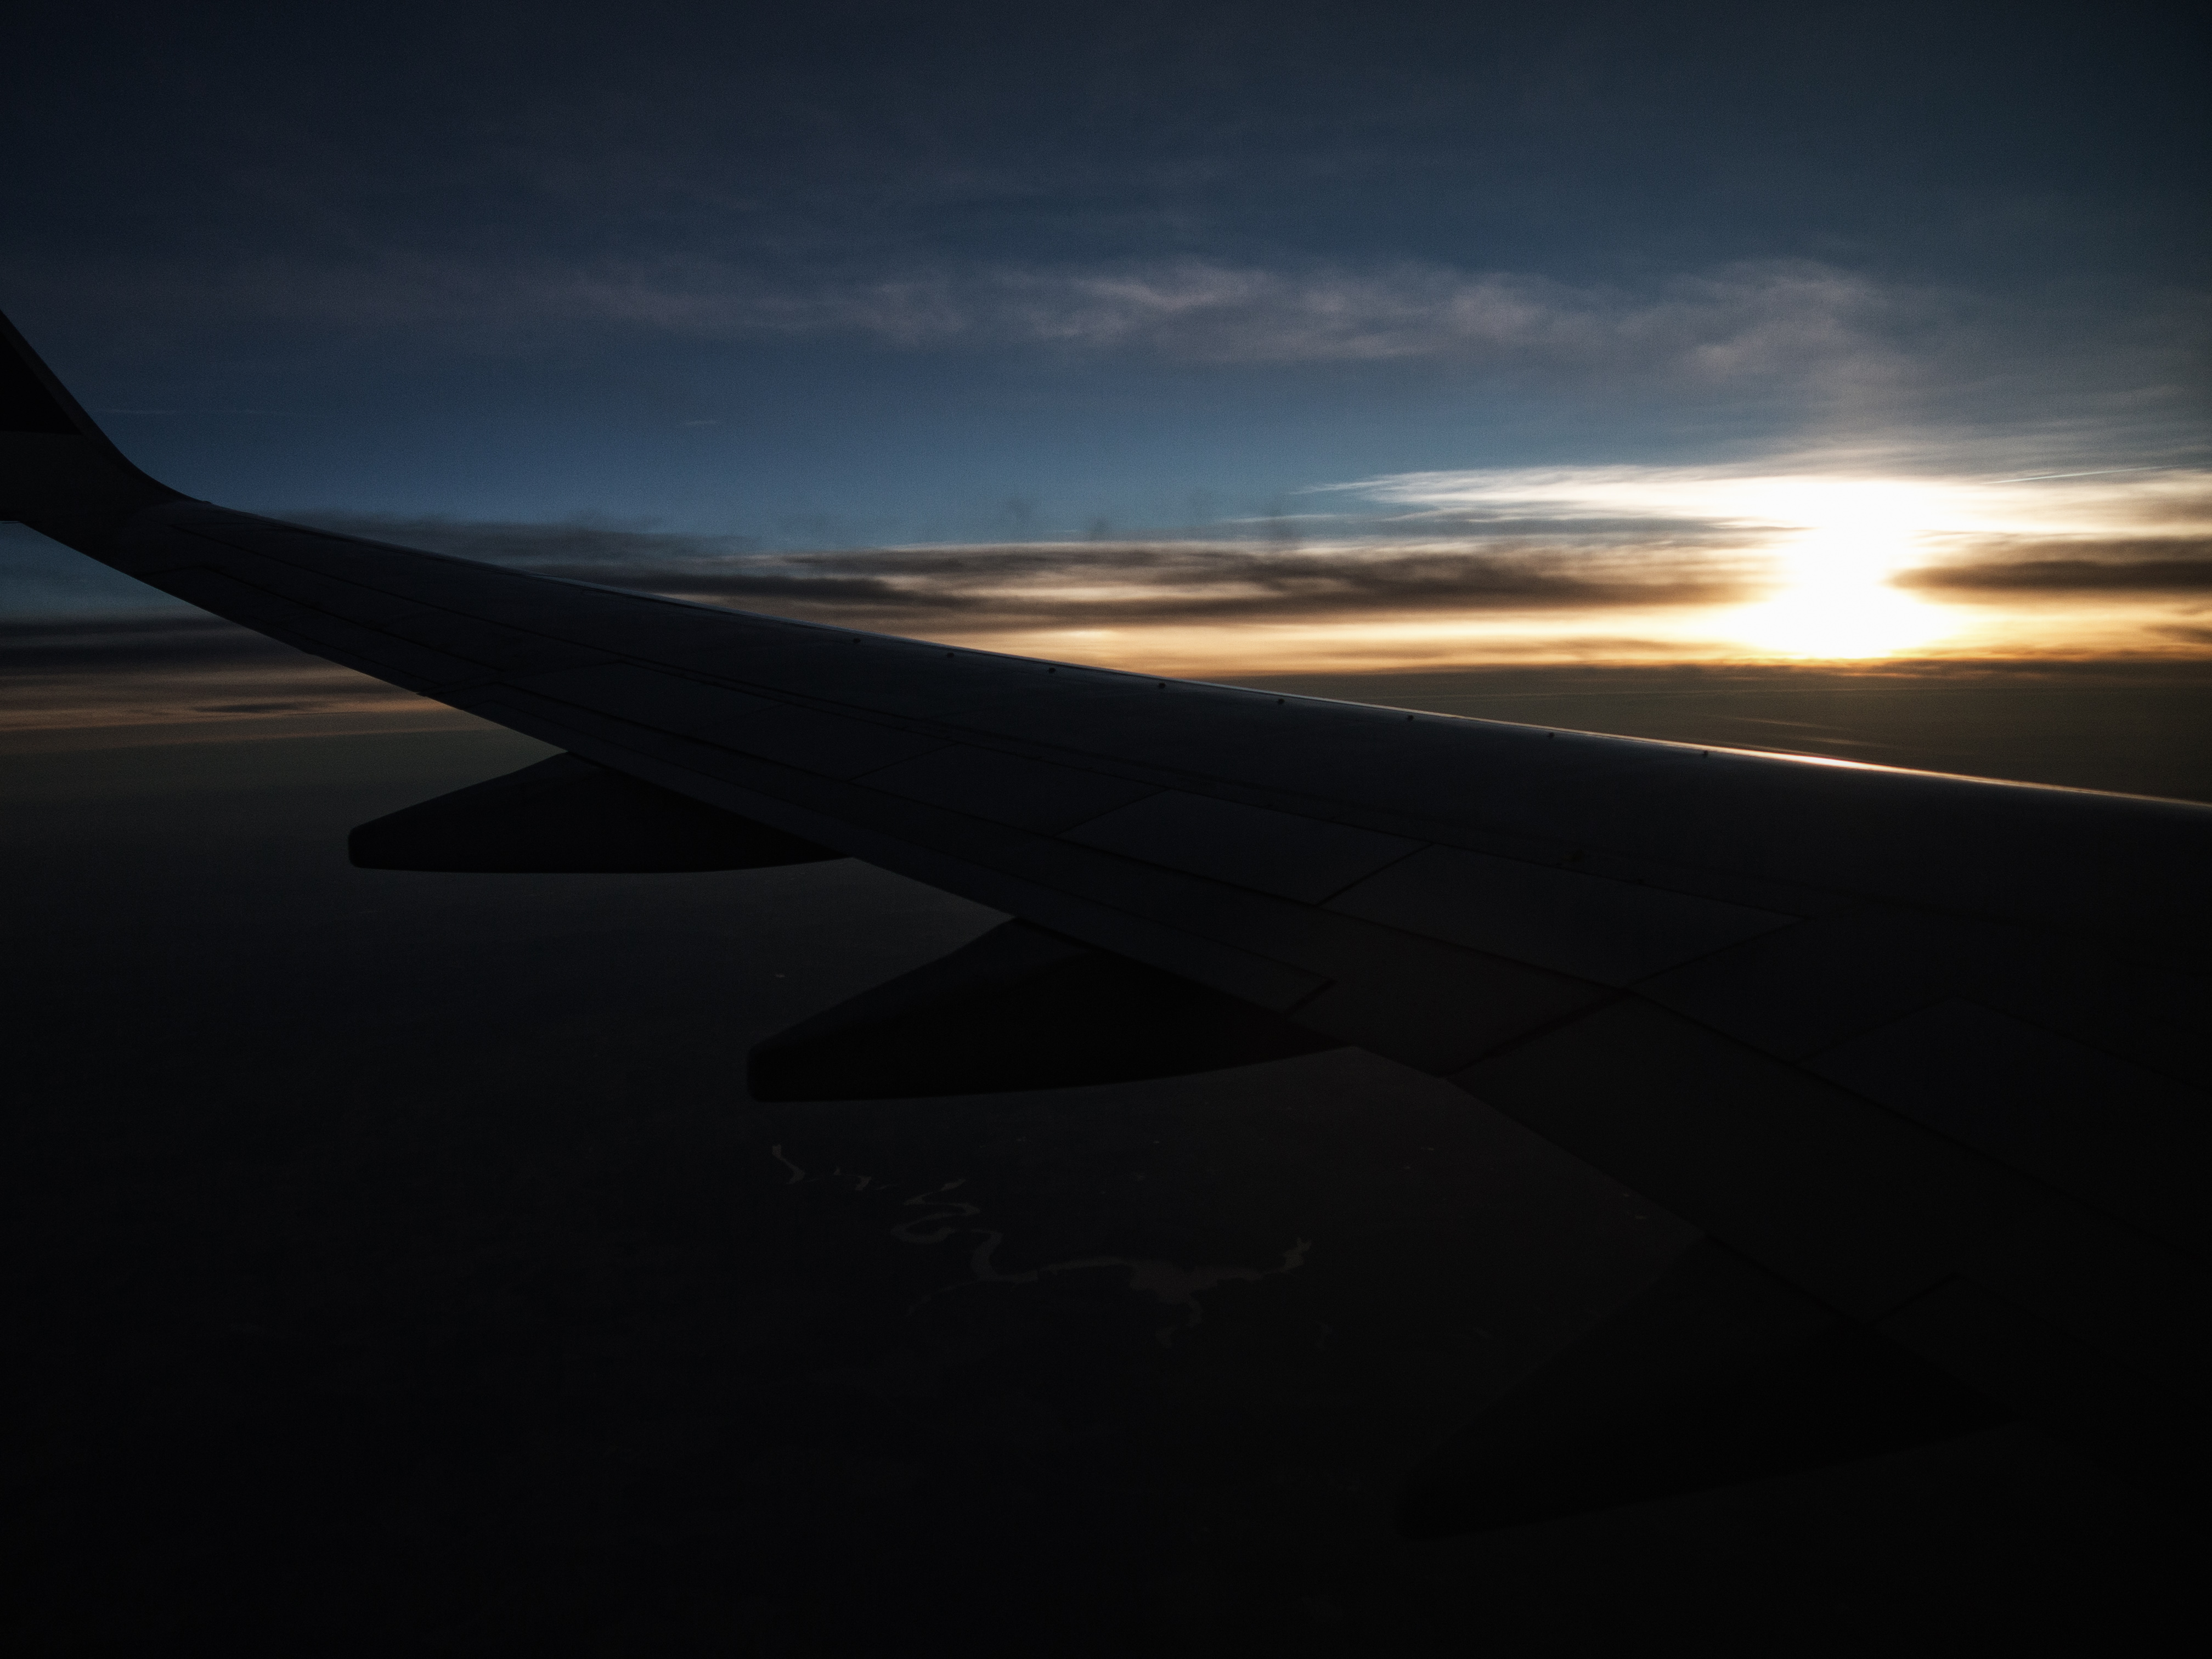 First time flying - Airplane wing at sunset